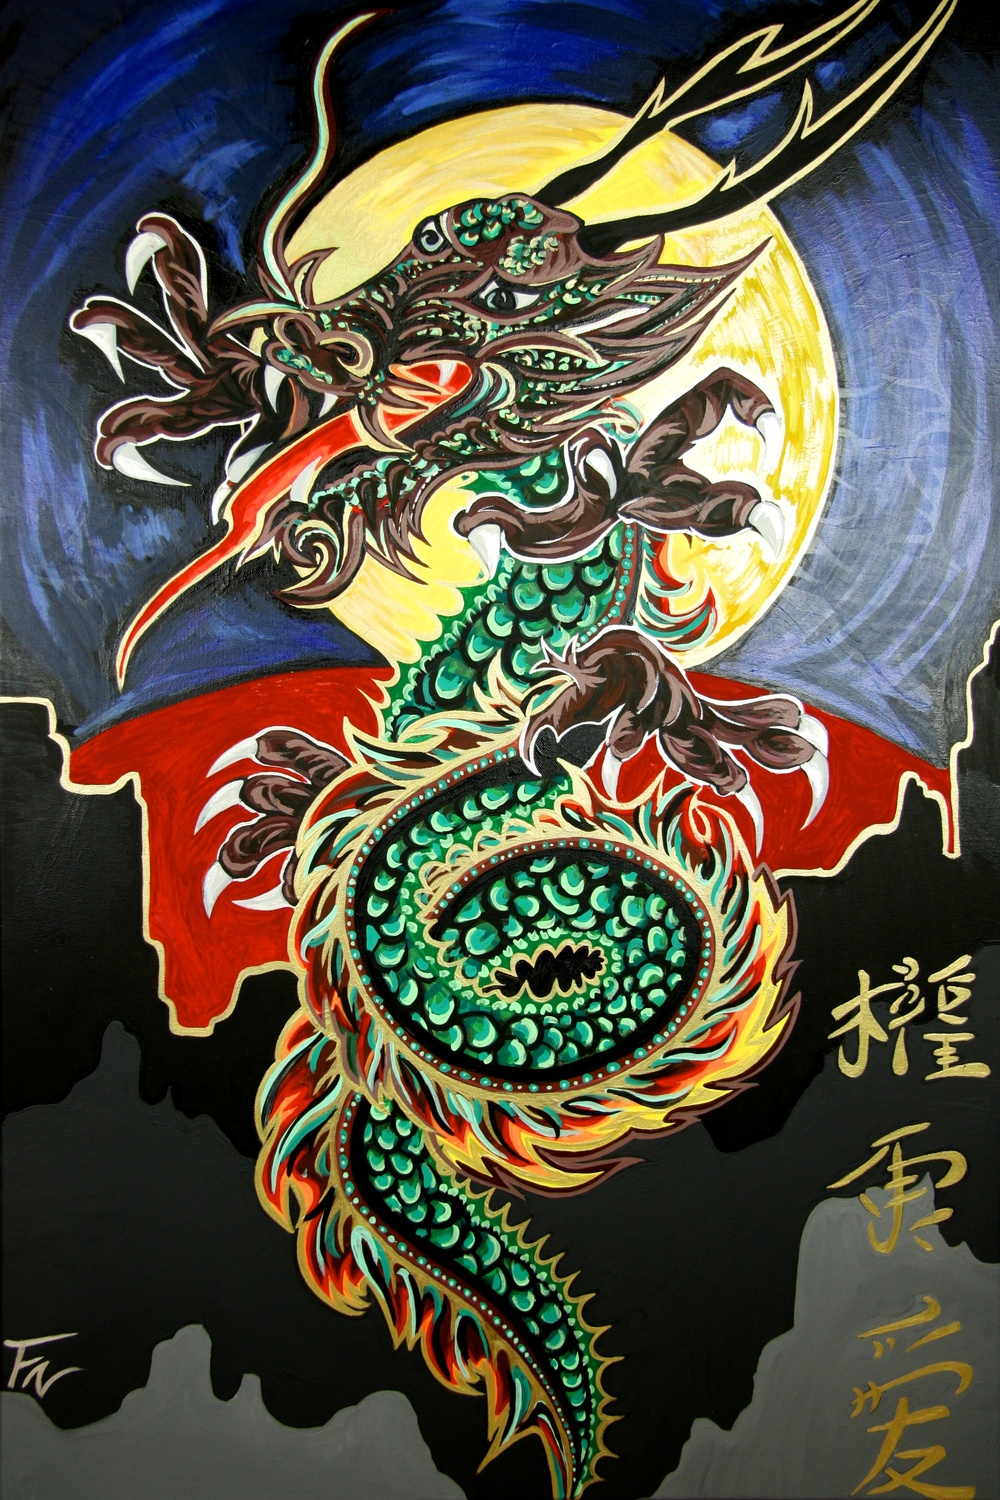 Dragon Painting Size 115x75cm Contact Feike for pricing info